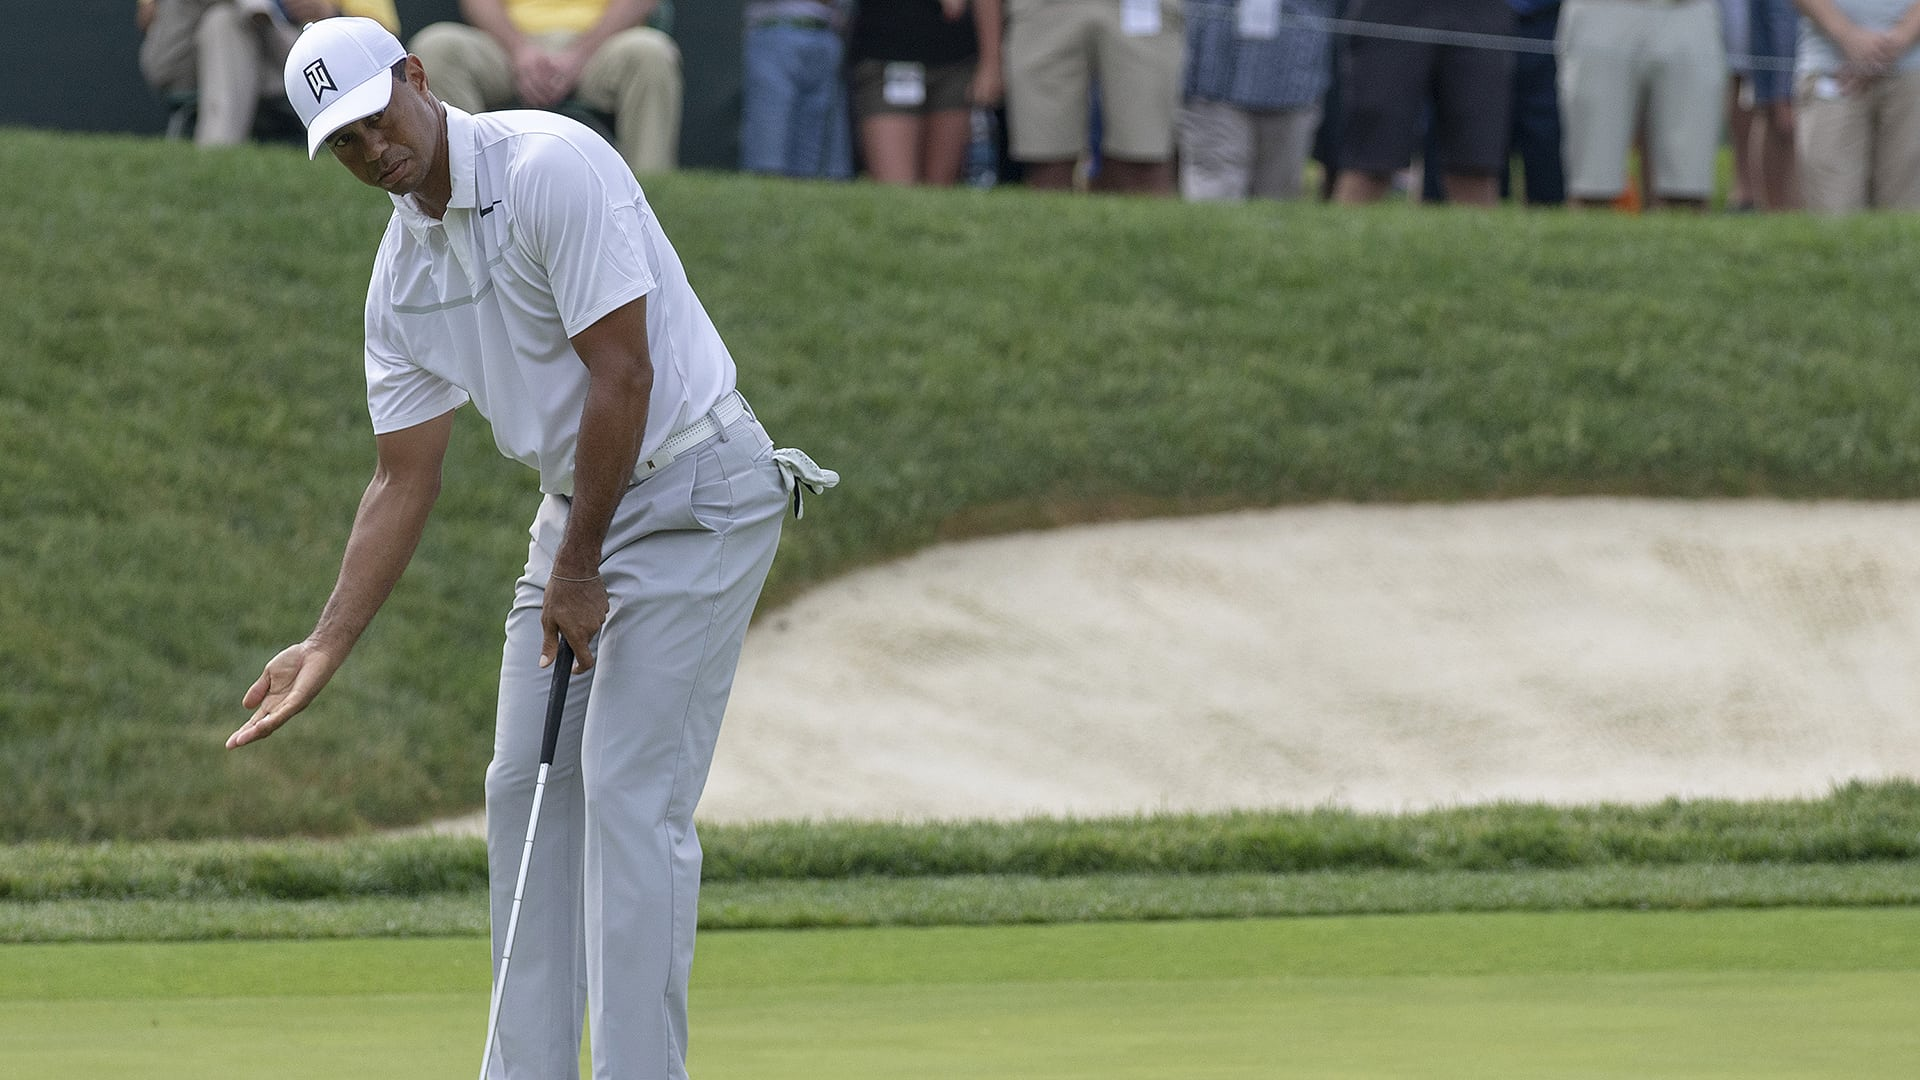 Watch: Woods struggles out of the gate at Memorial